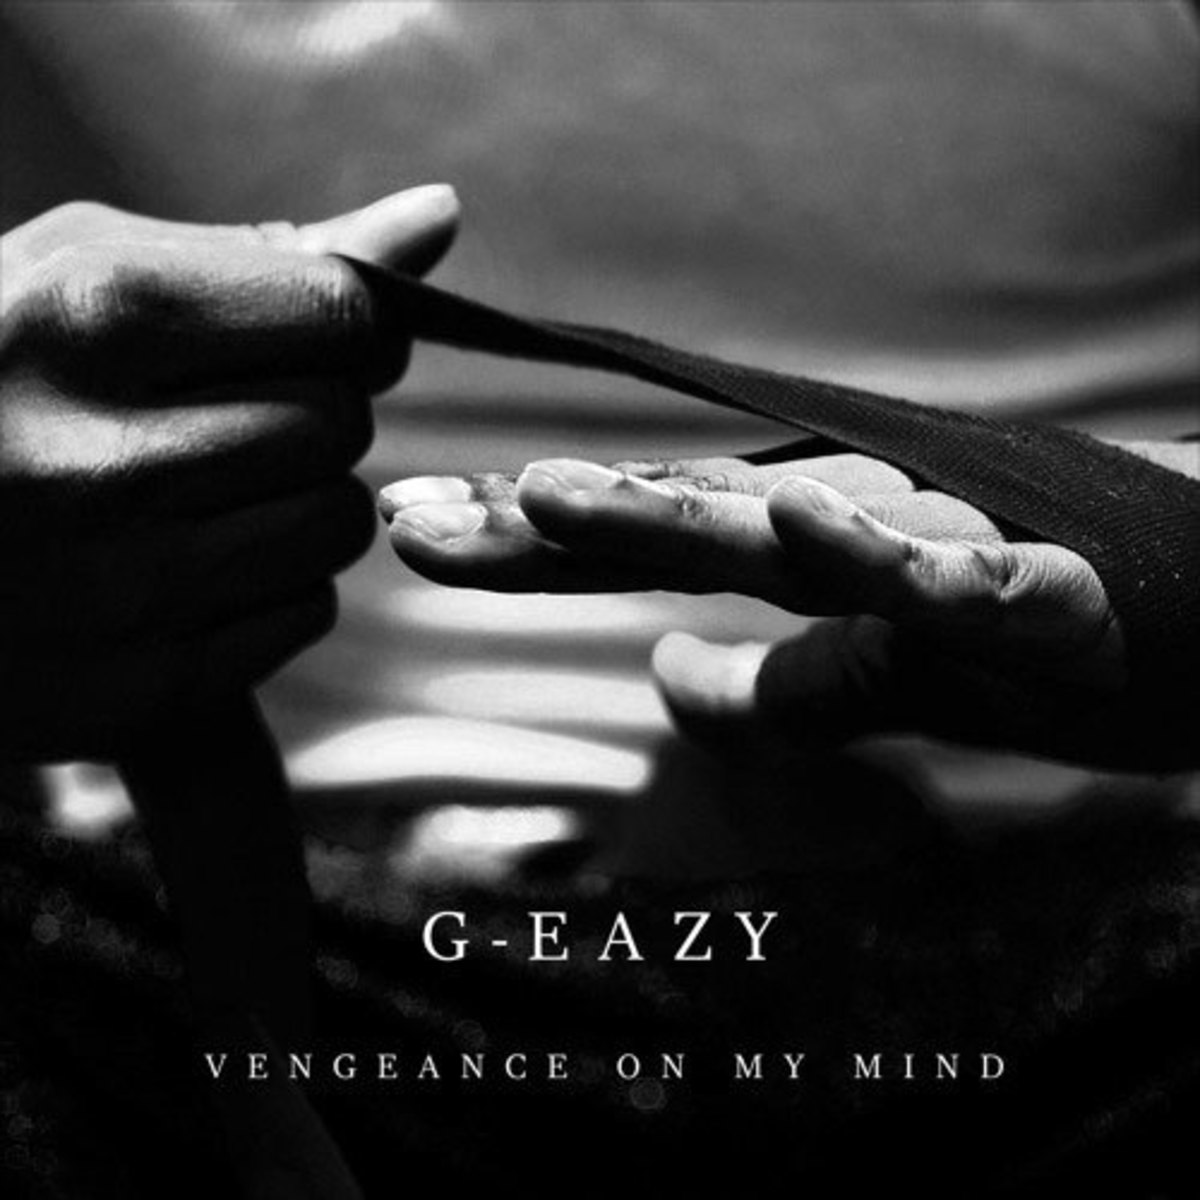 g-eazy-vengeance-on-my-mind.jpg